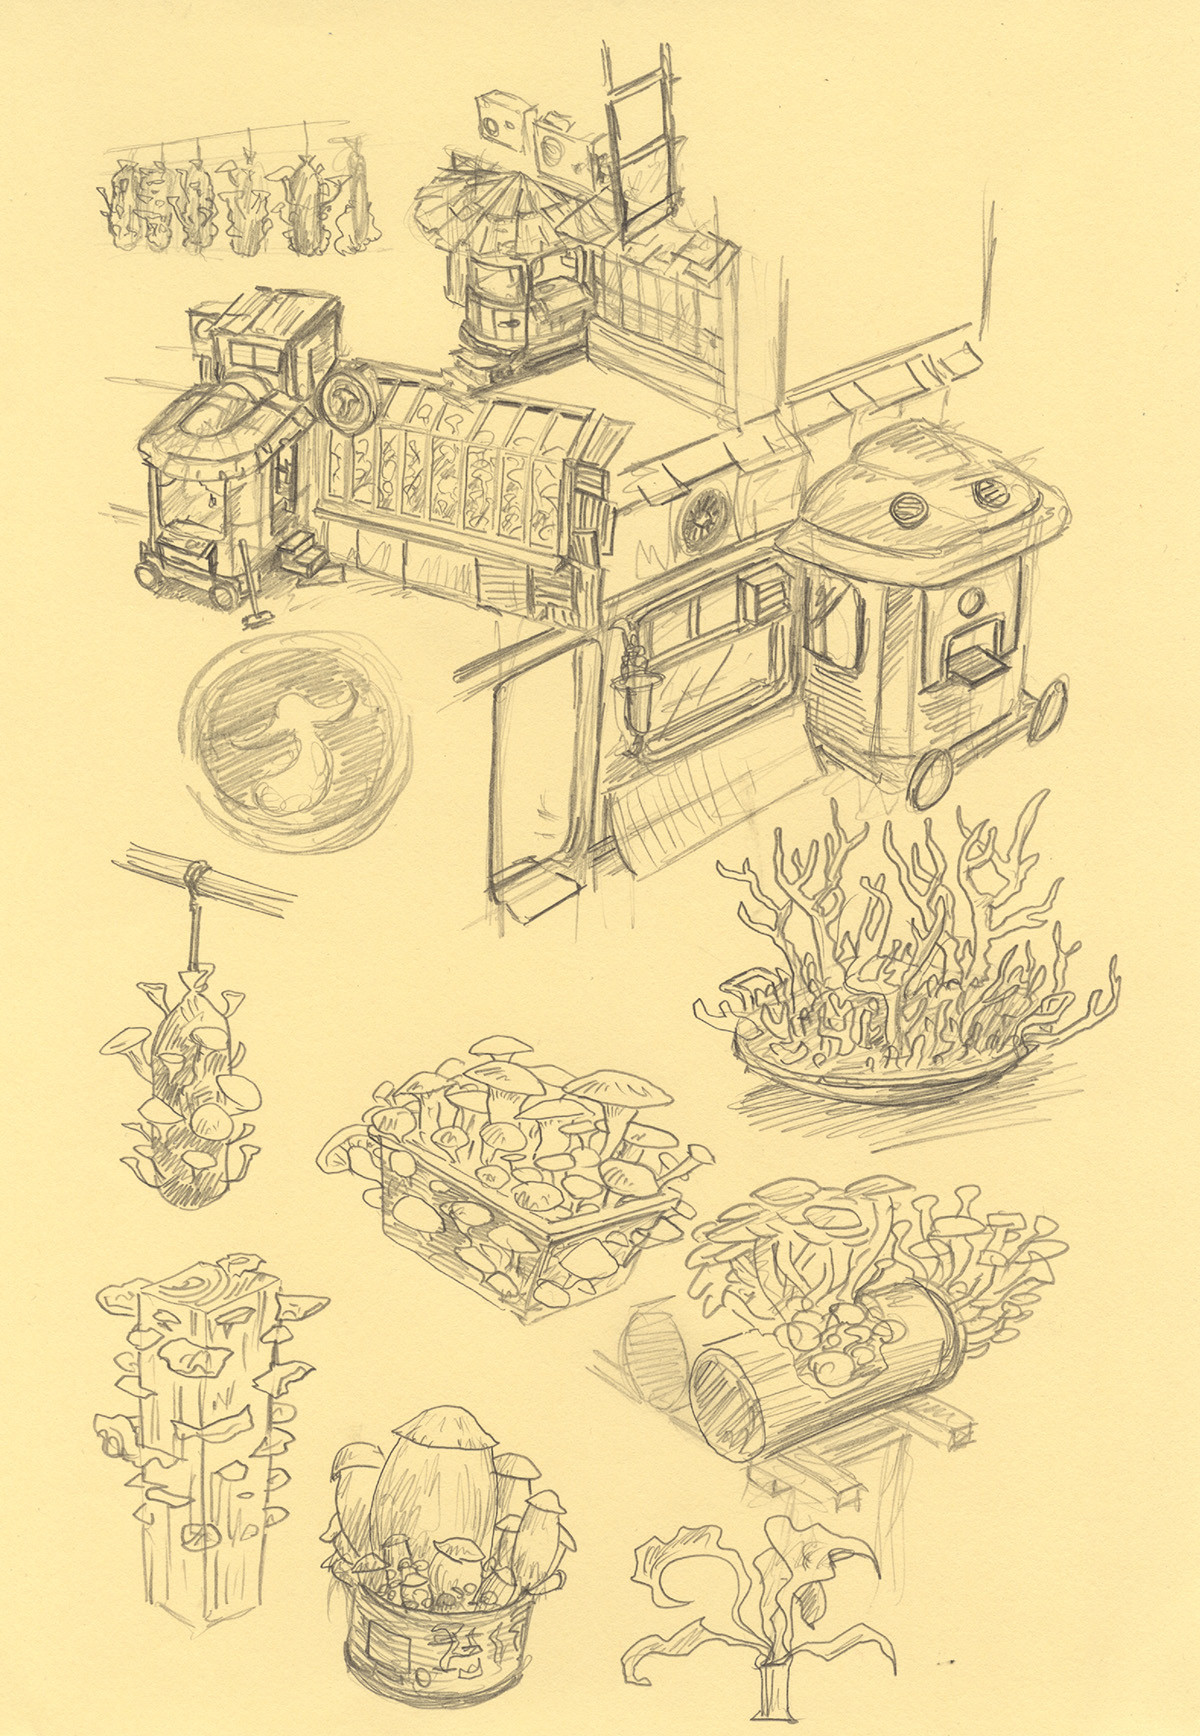 The mushroom shop concept drawing